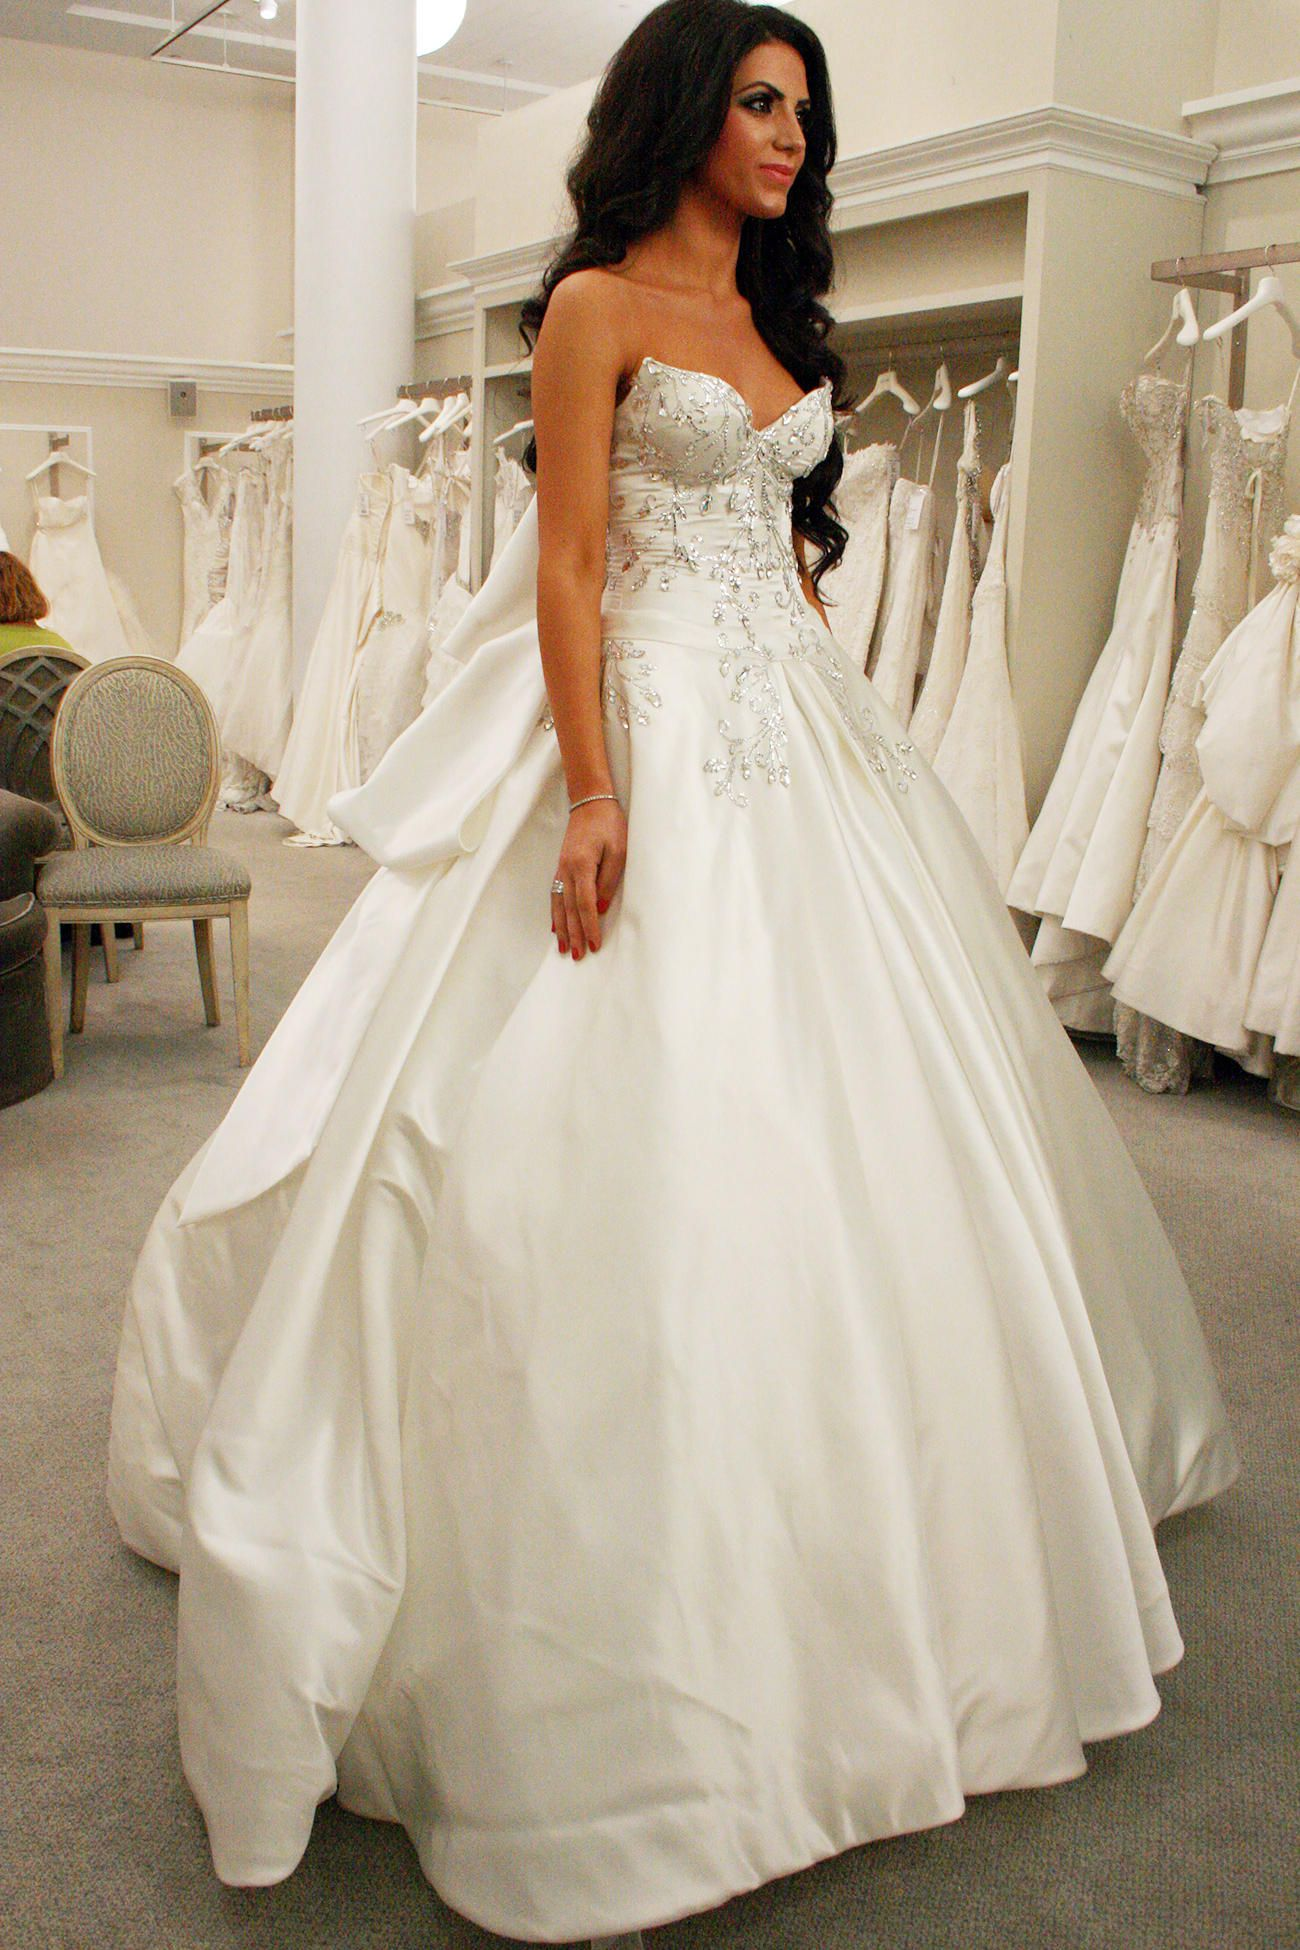 This Photo Gallery Features Wedding Dress Pictures Of Some The Most Glamorouost Expensive Gowns From Kleinfeld